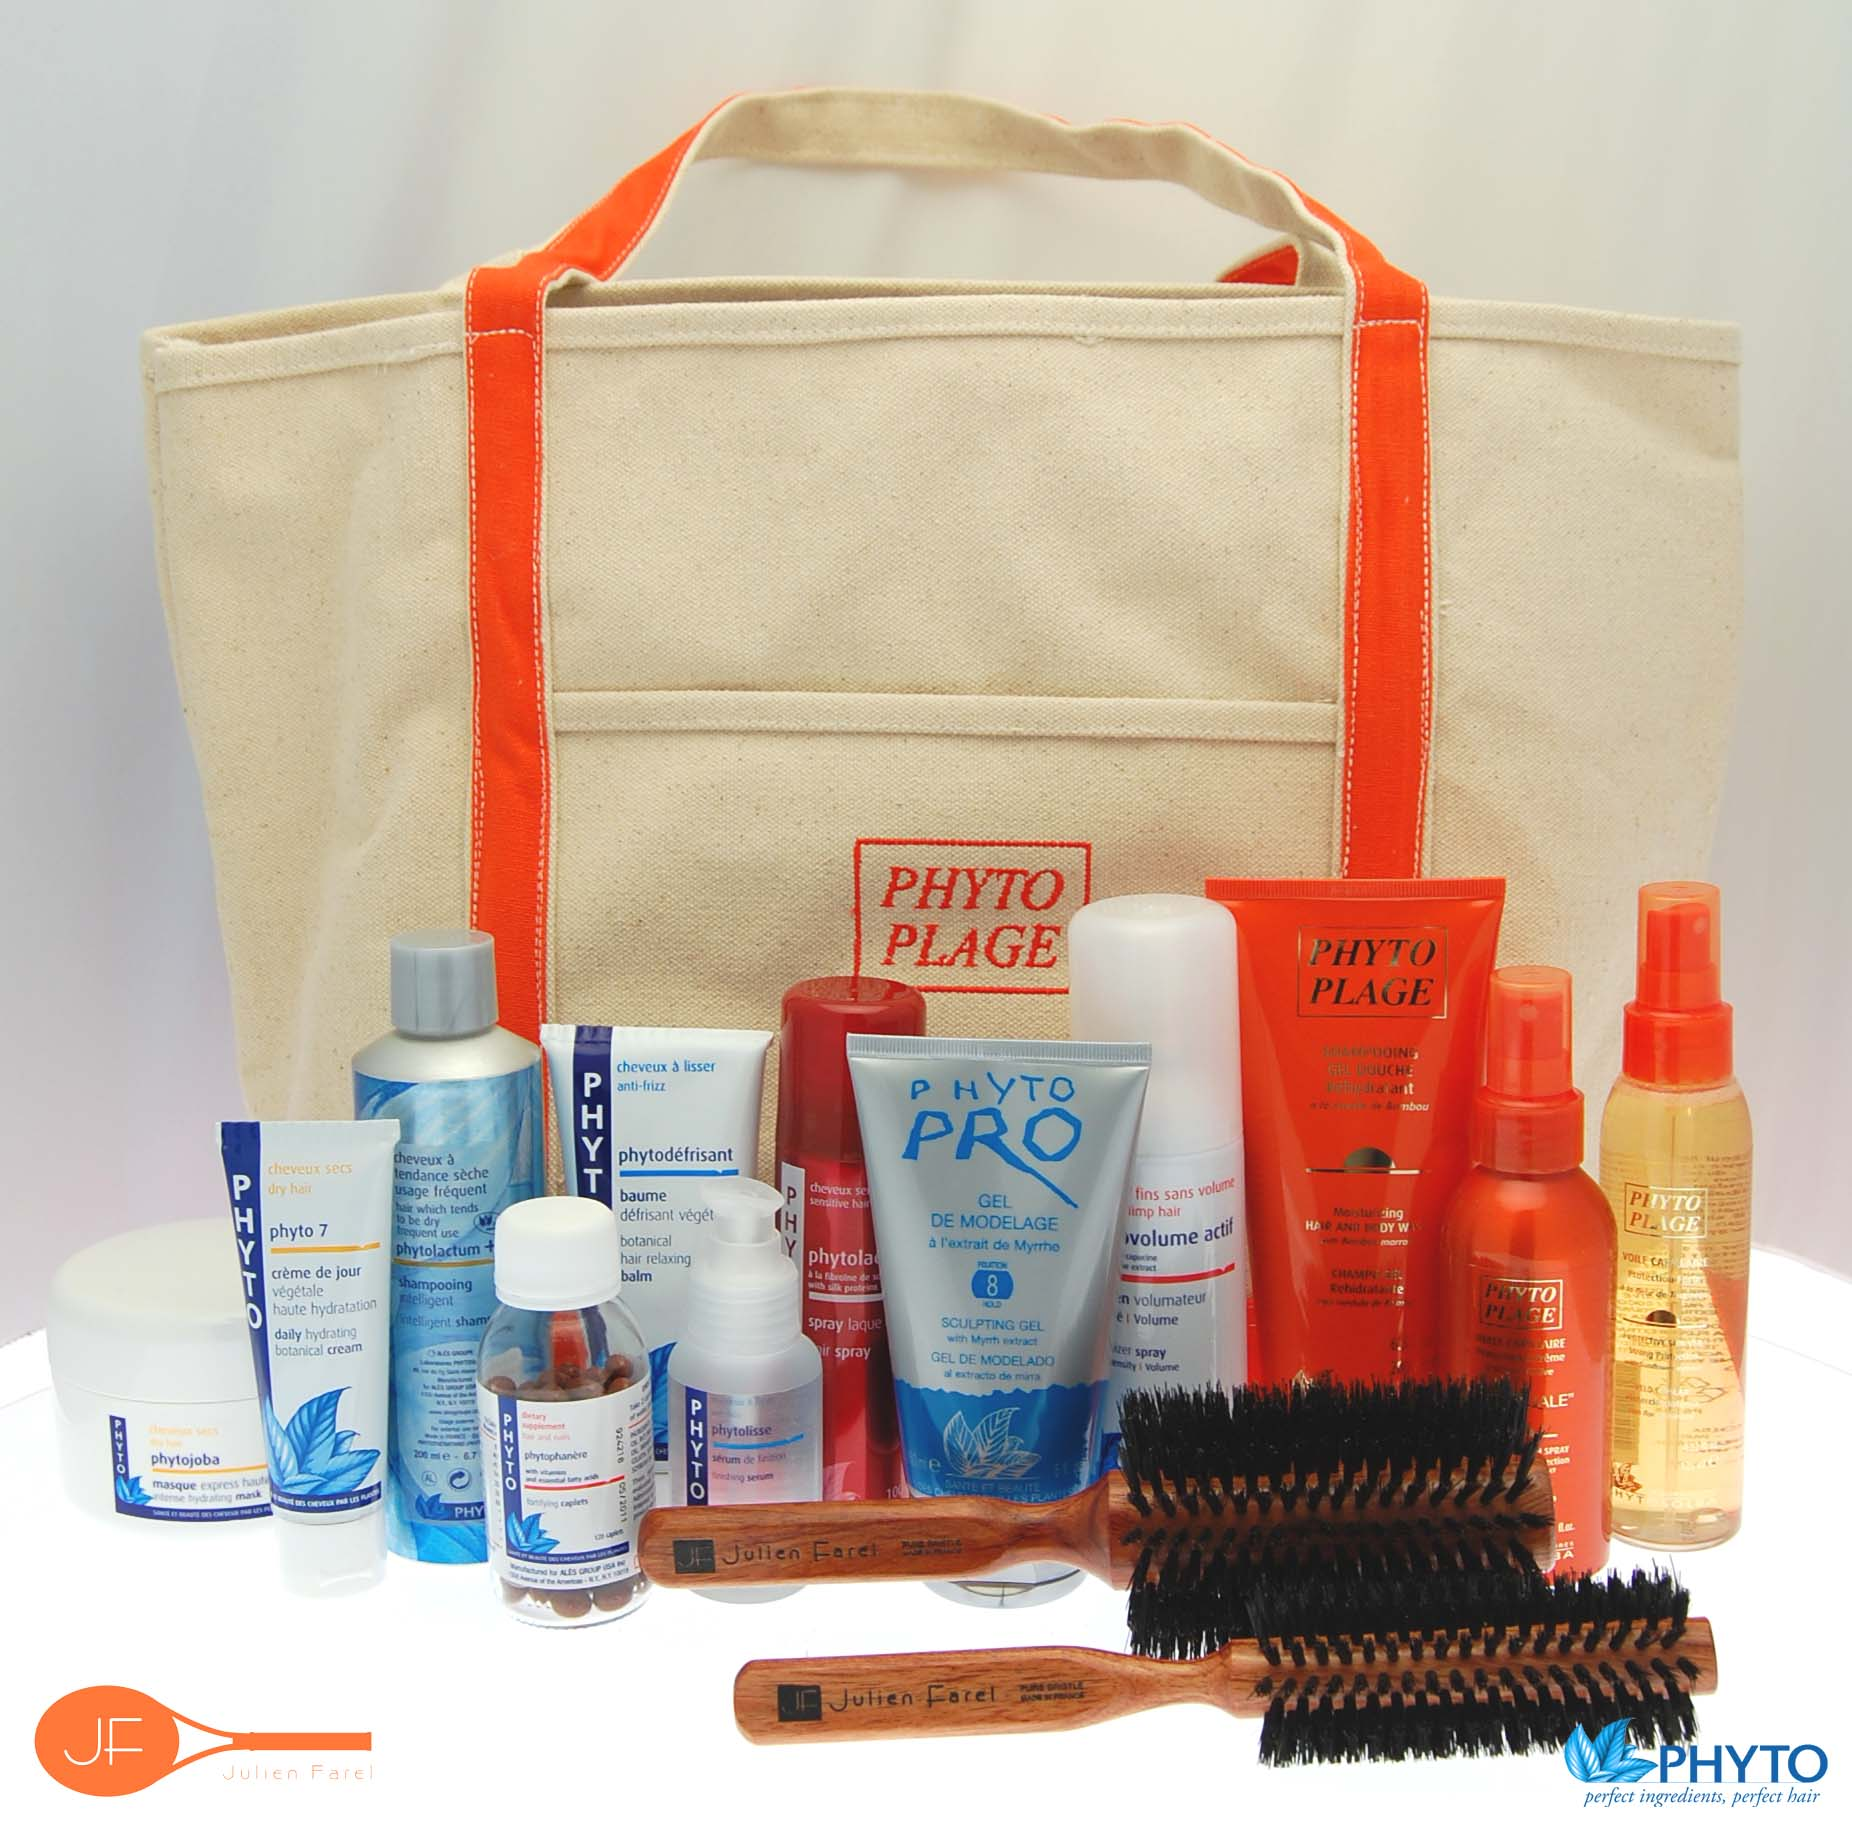 The top 40 US Open tennis players will receive this Phyto gift bag.